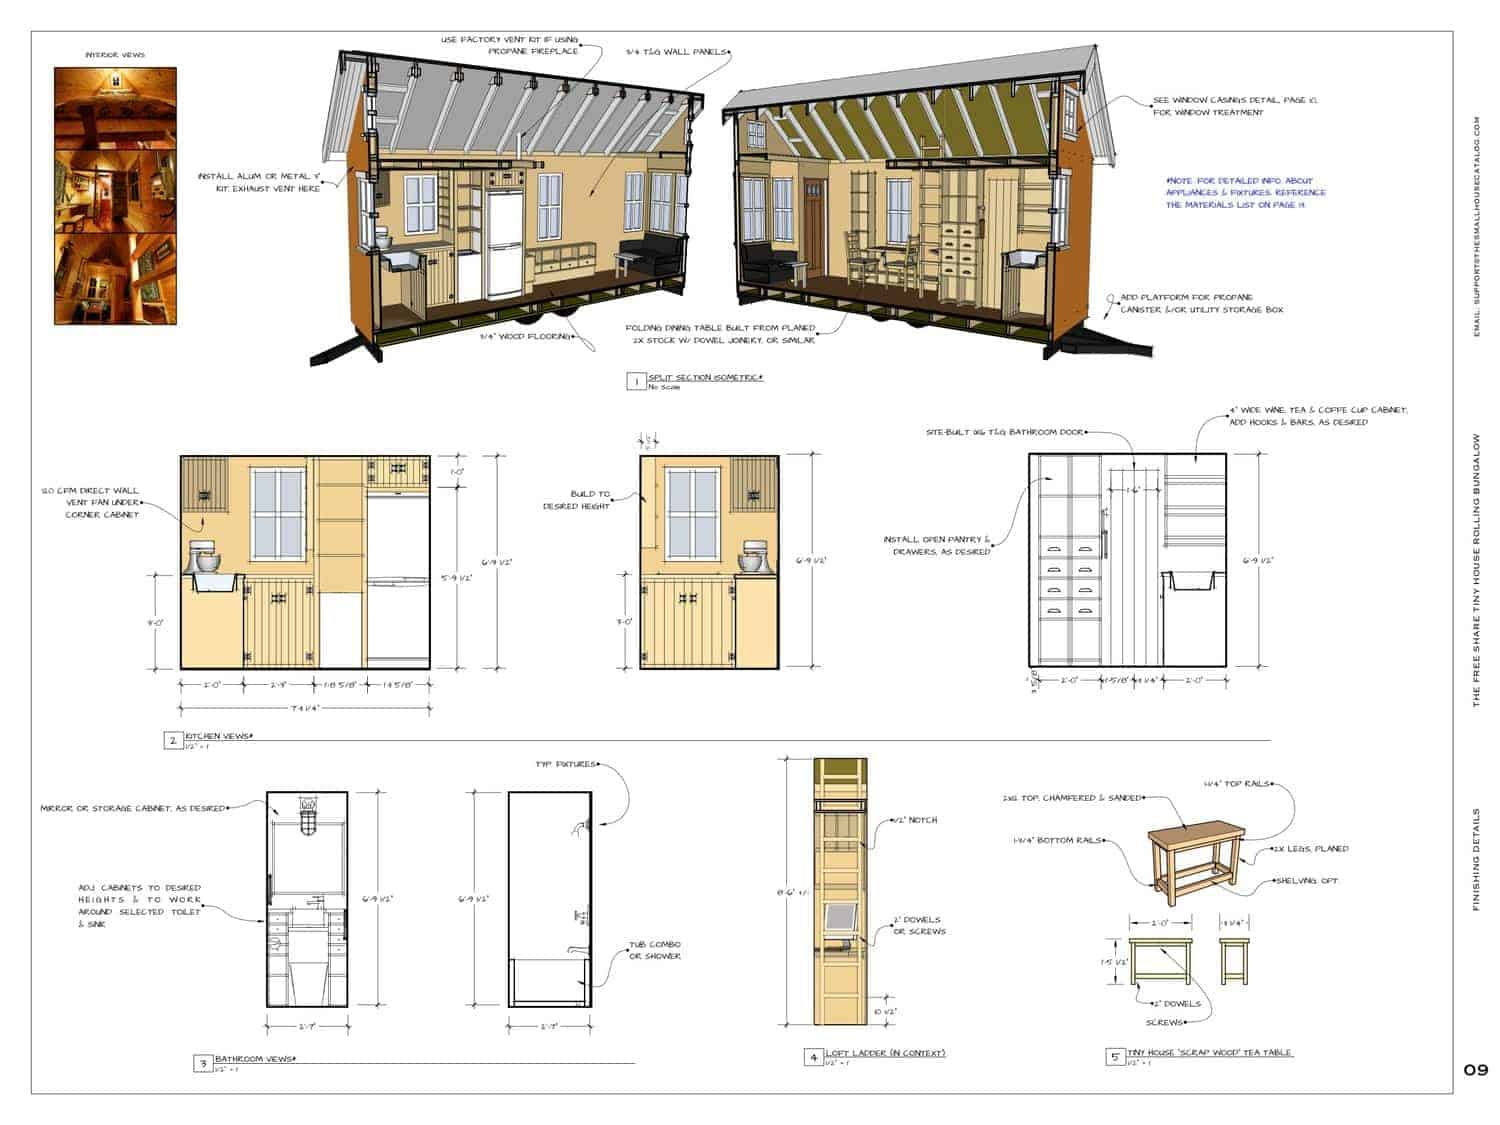 Get free plans to build this adorable tiny bungalow for Small home design plans